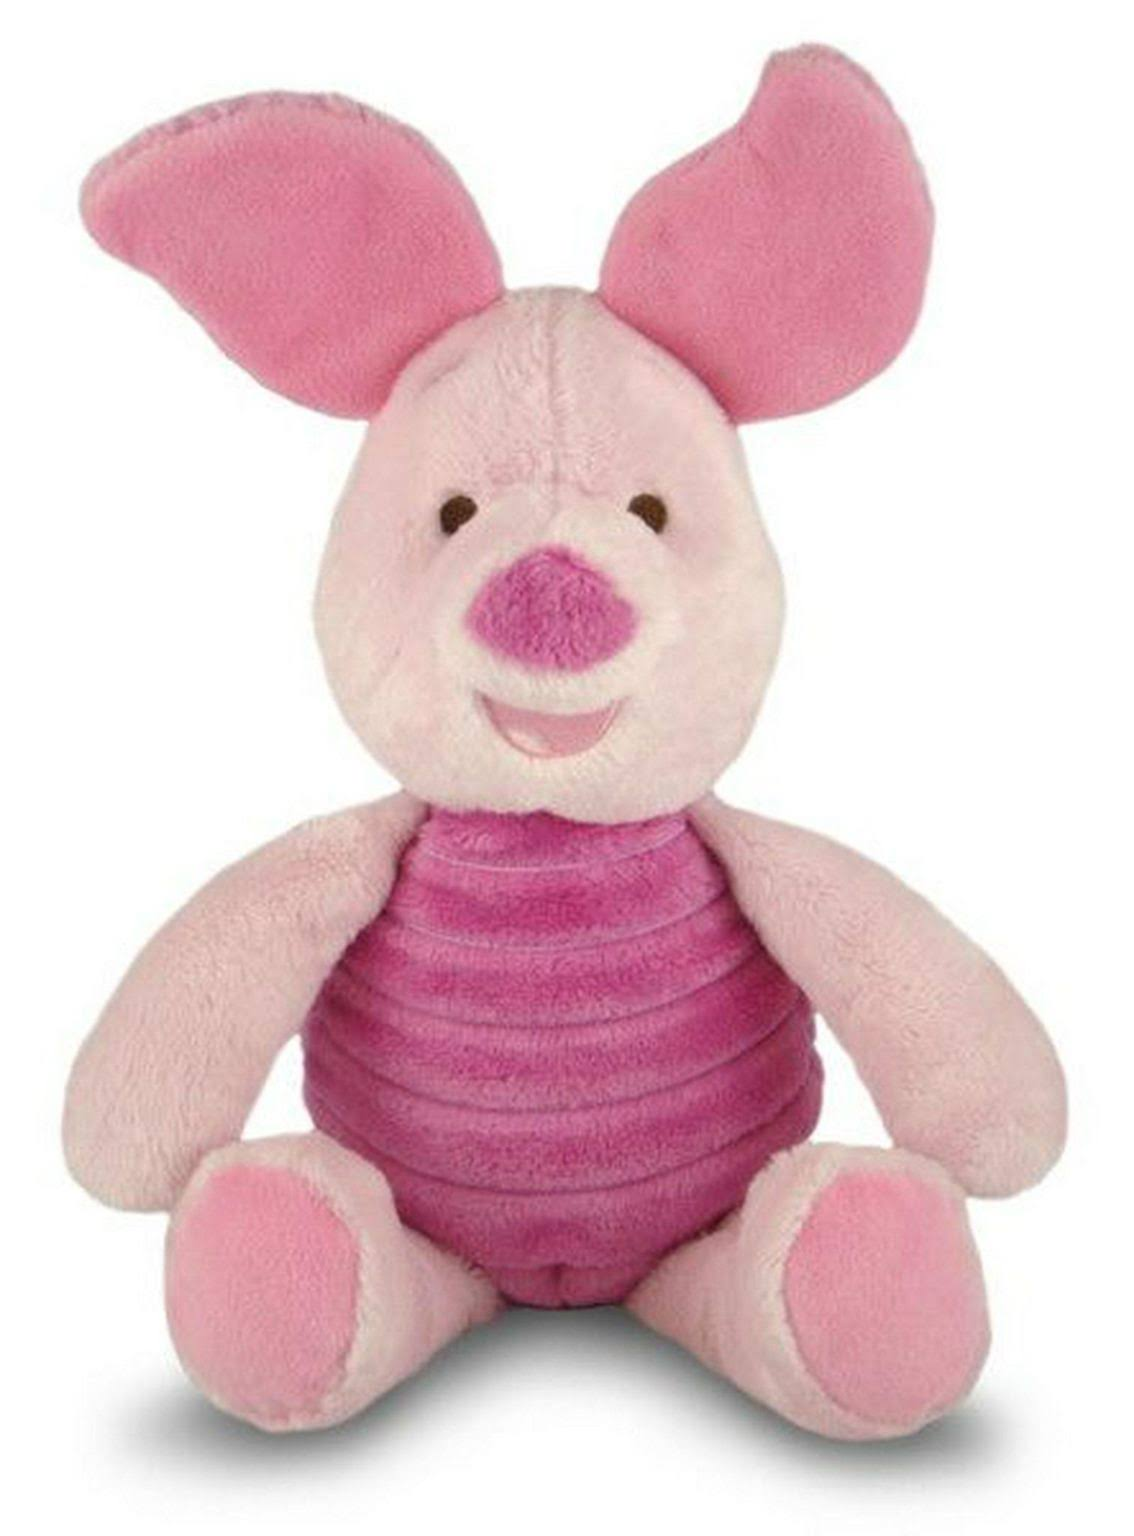 Kids Preferred Disney Baby Piglet Plush